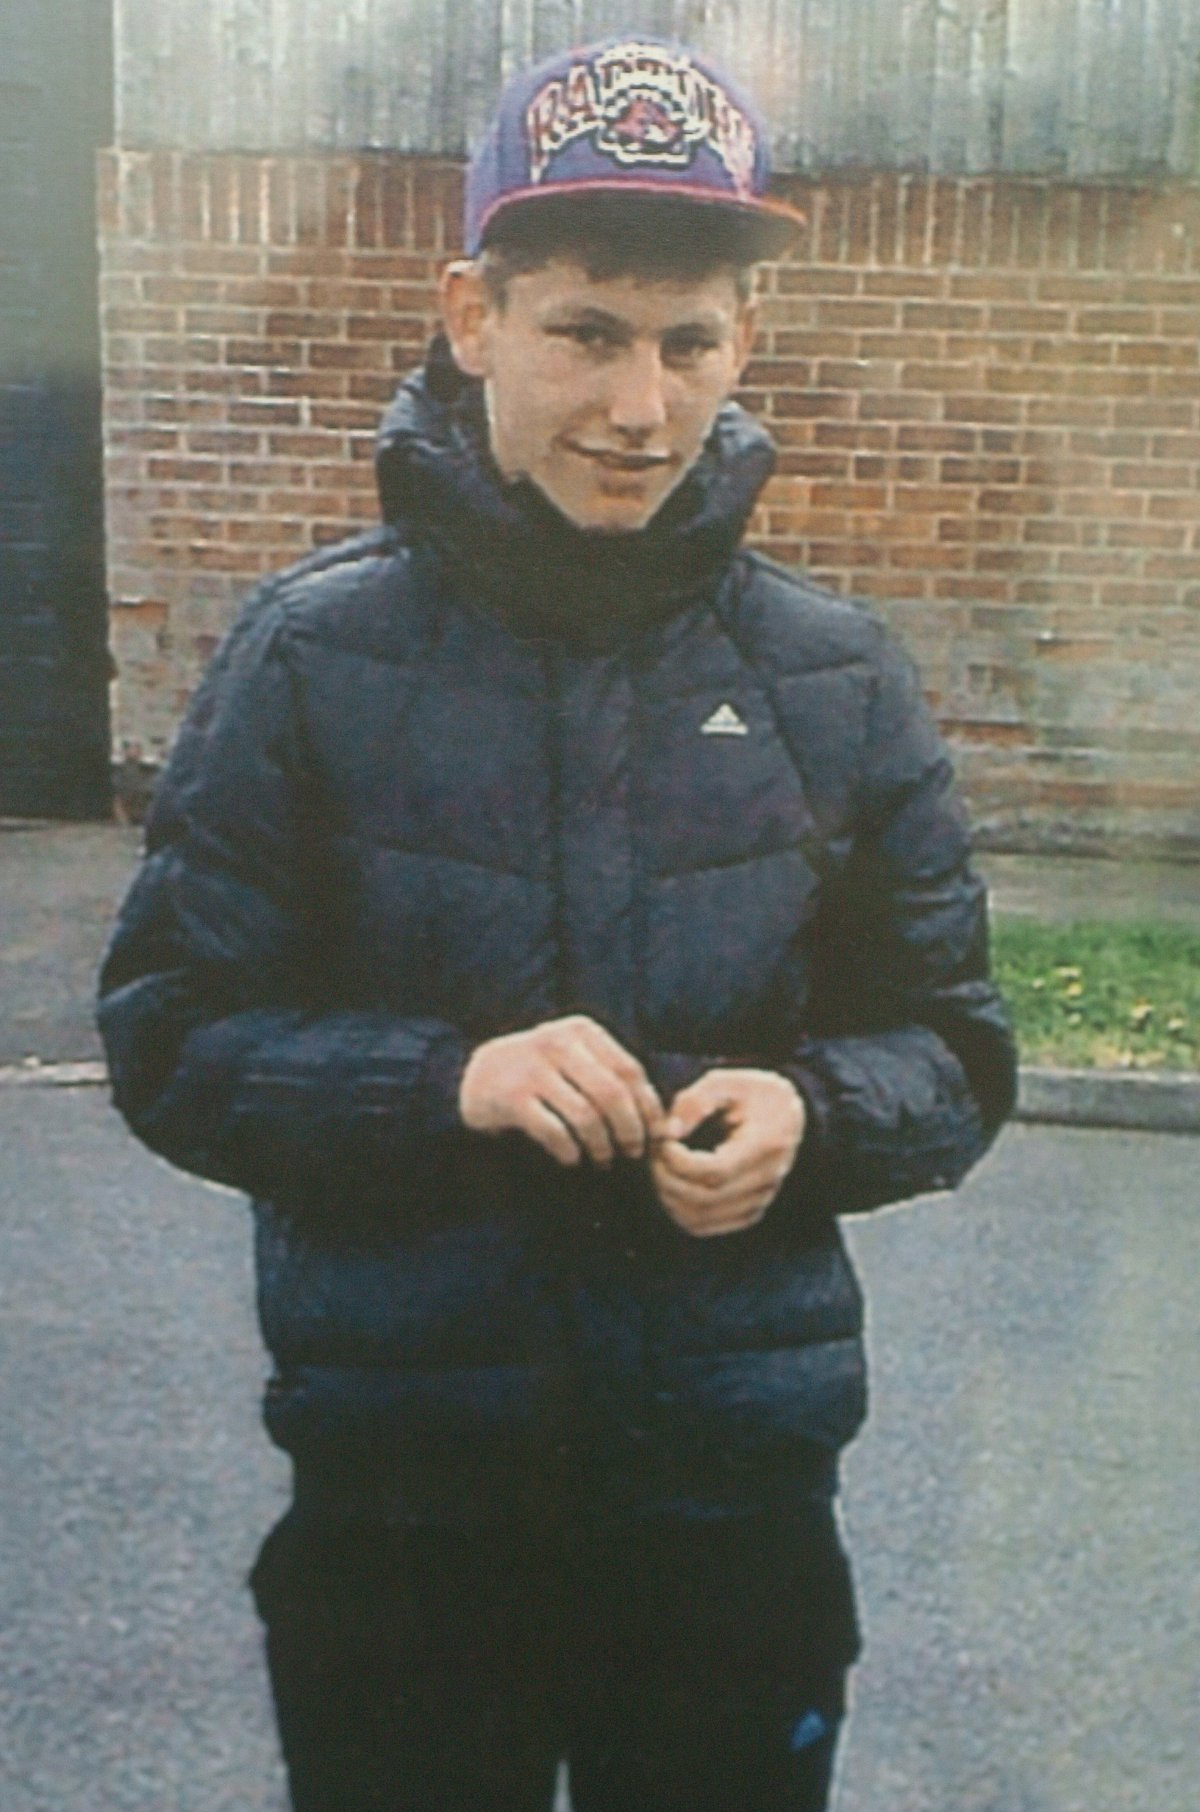 Death of St Mary Cray boy who crashed stolen motorbike in Orpington was an accident